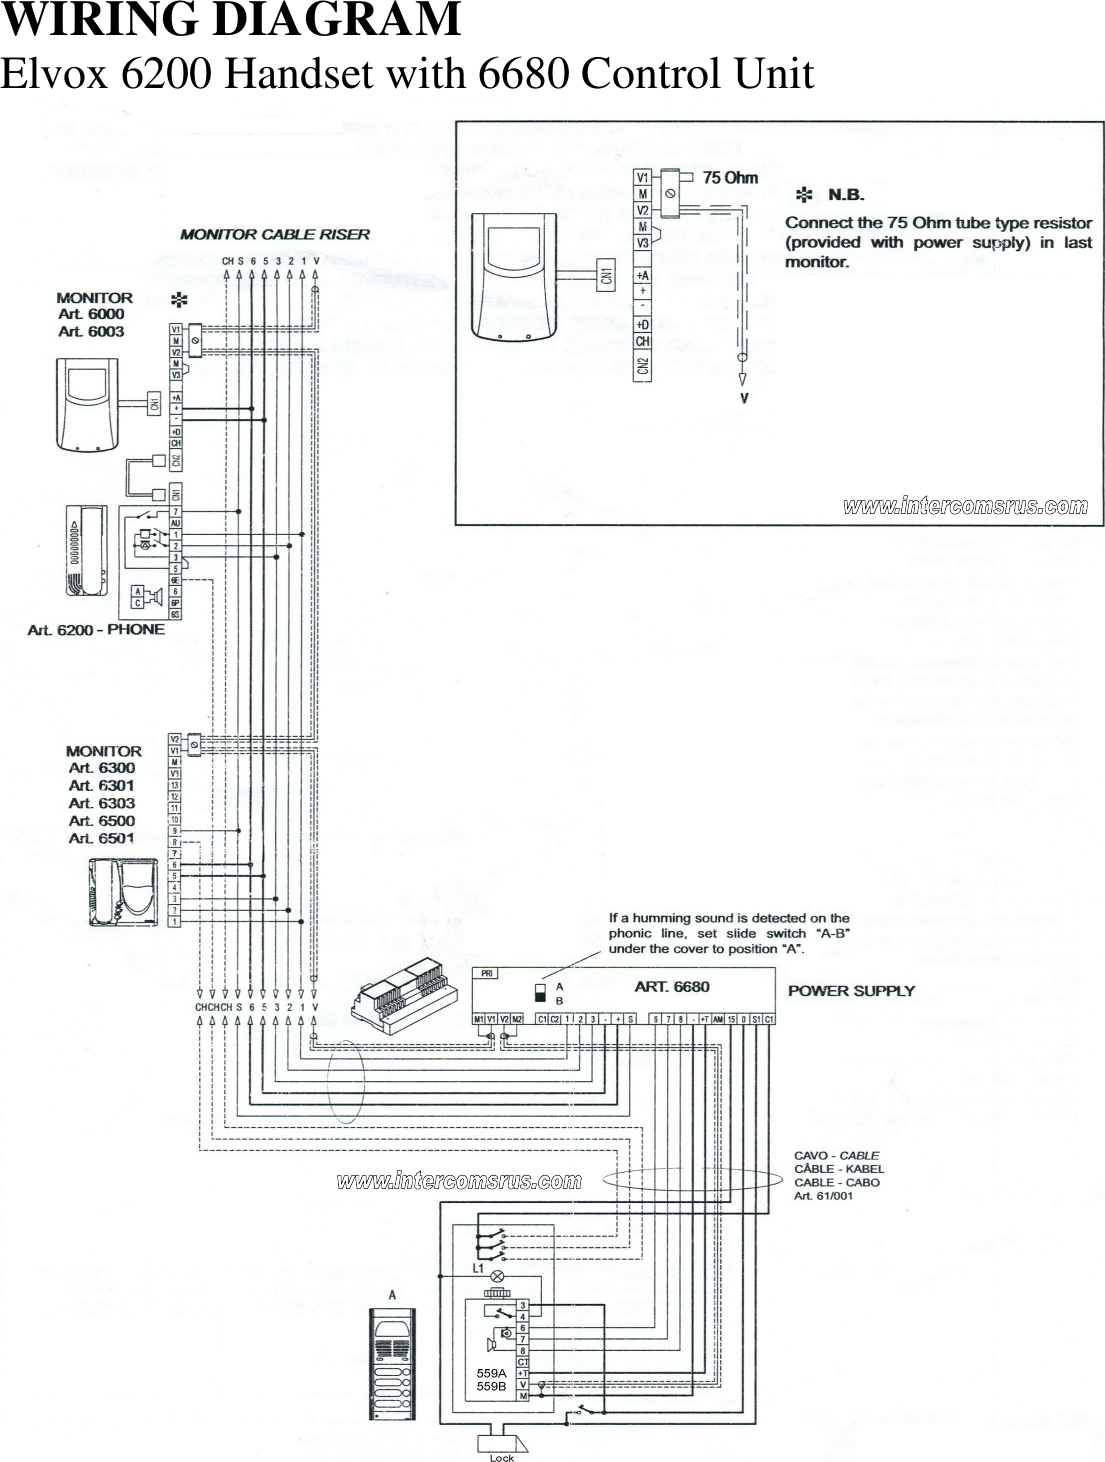 Elvox Intercom Wiring Diagram Apartment Gt 3 Wire Systems 6200 Handset Data Sheet Elvox6200 Page 6 Of